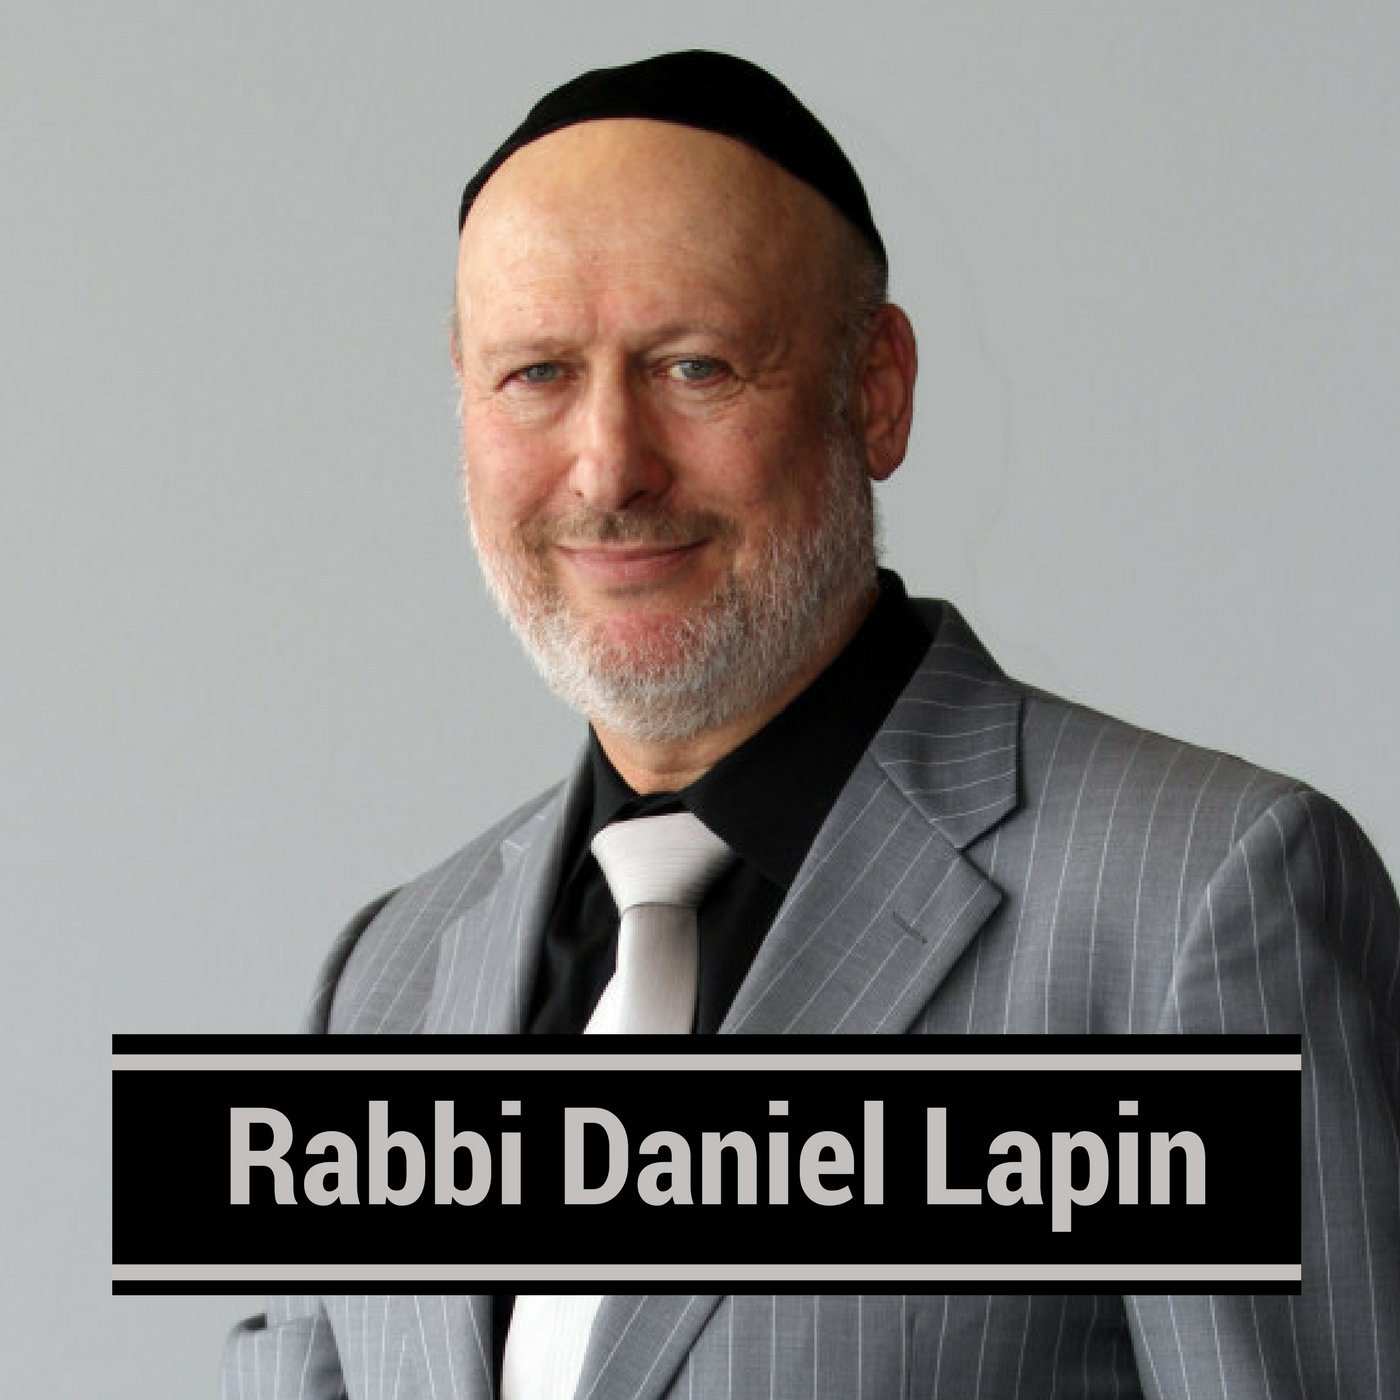 Rabbi Daniel Lapin's podcast